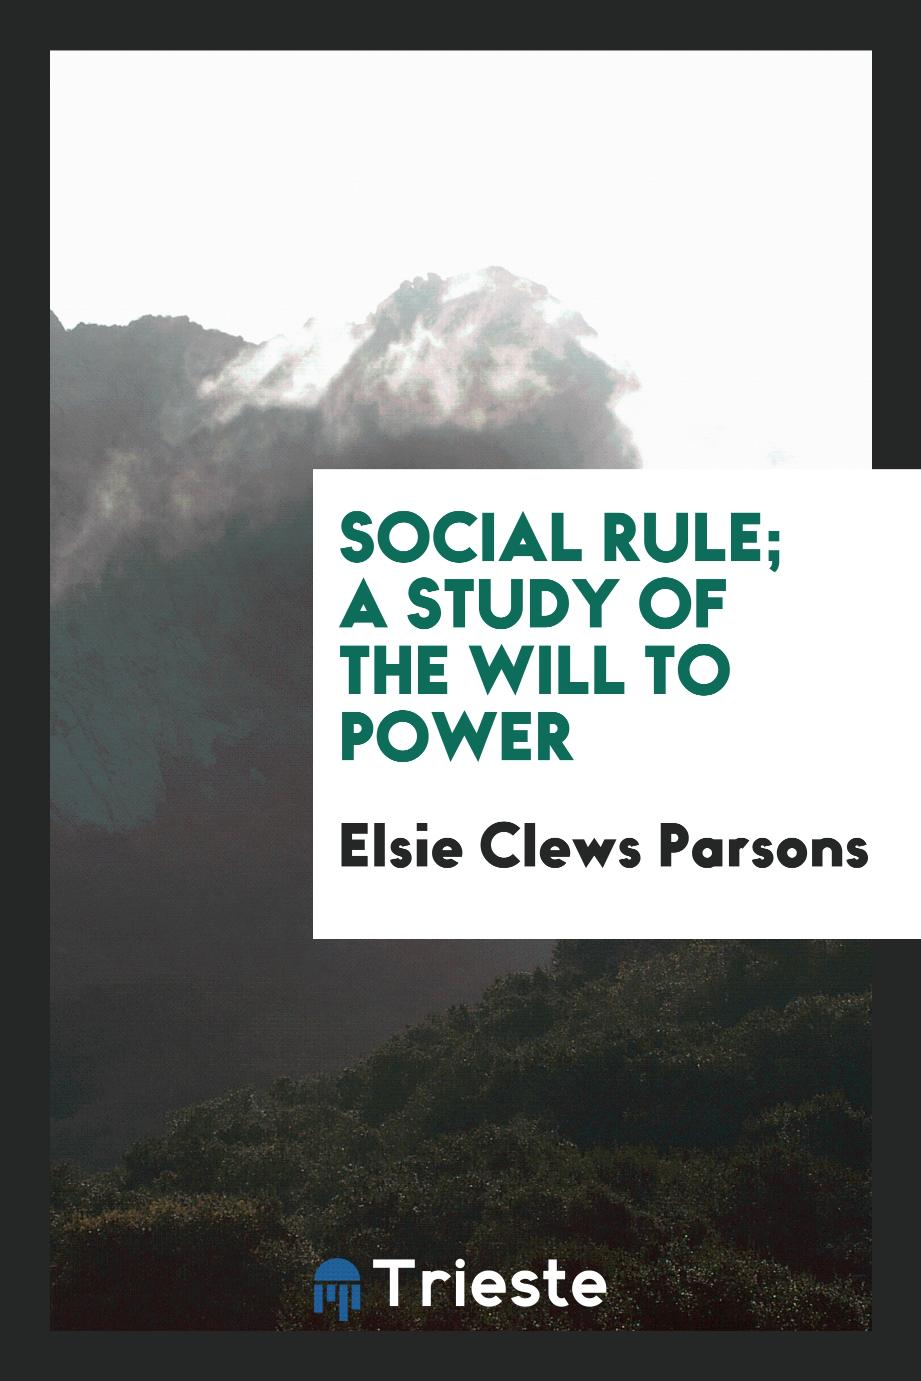 Social rule; a study of the will to power